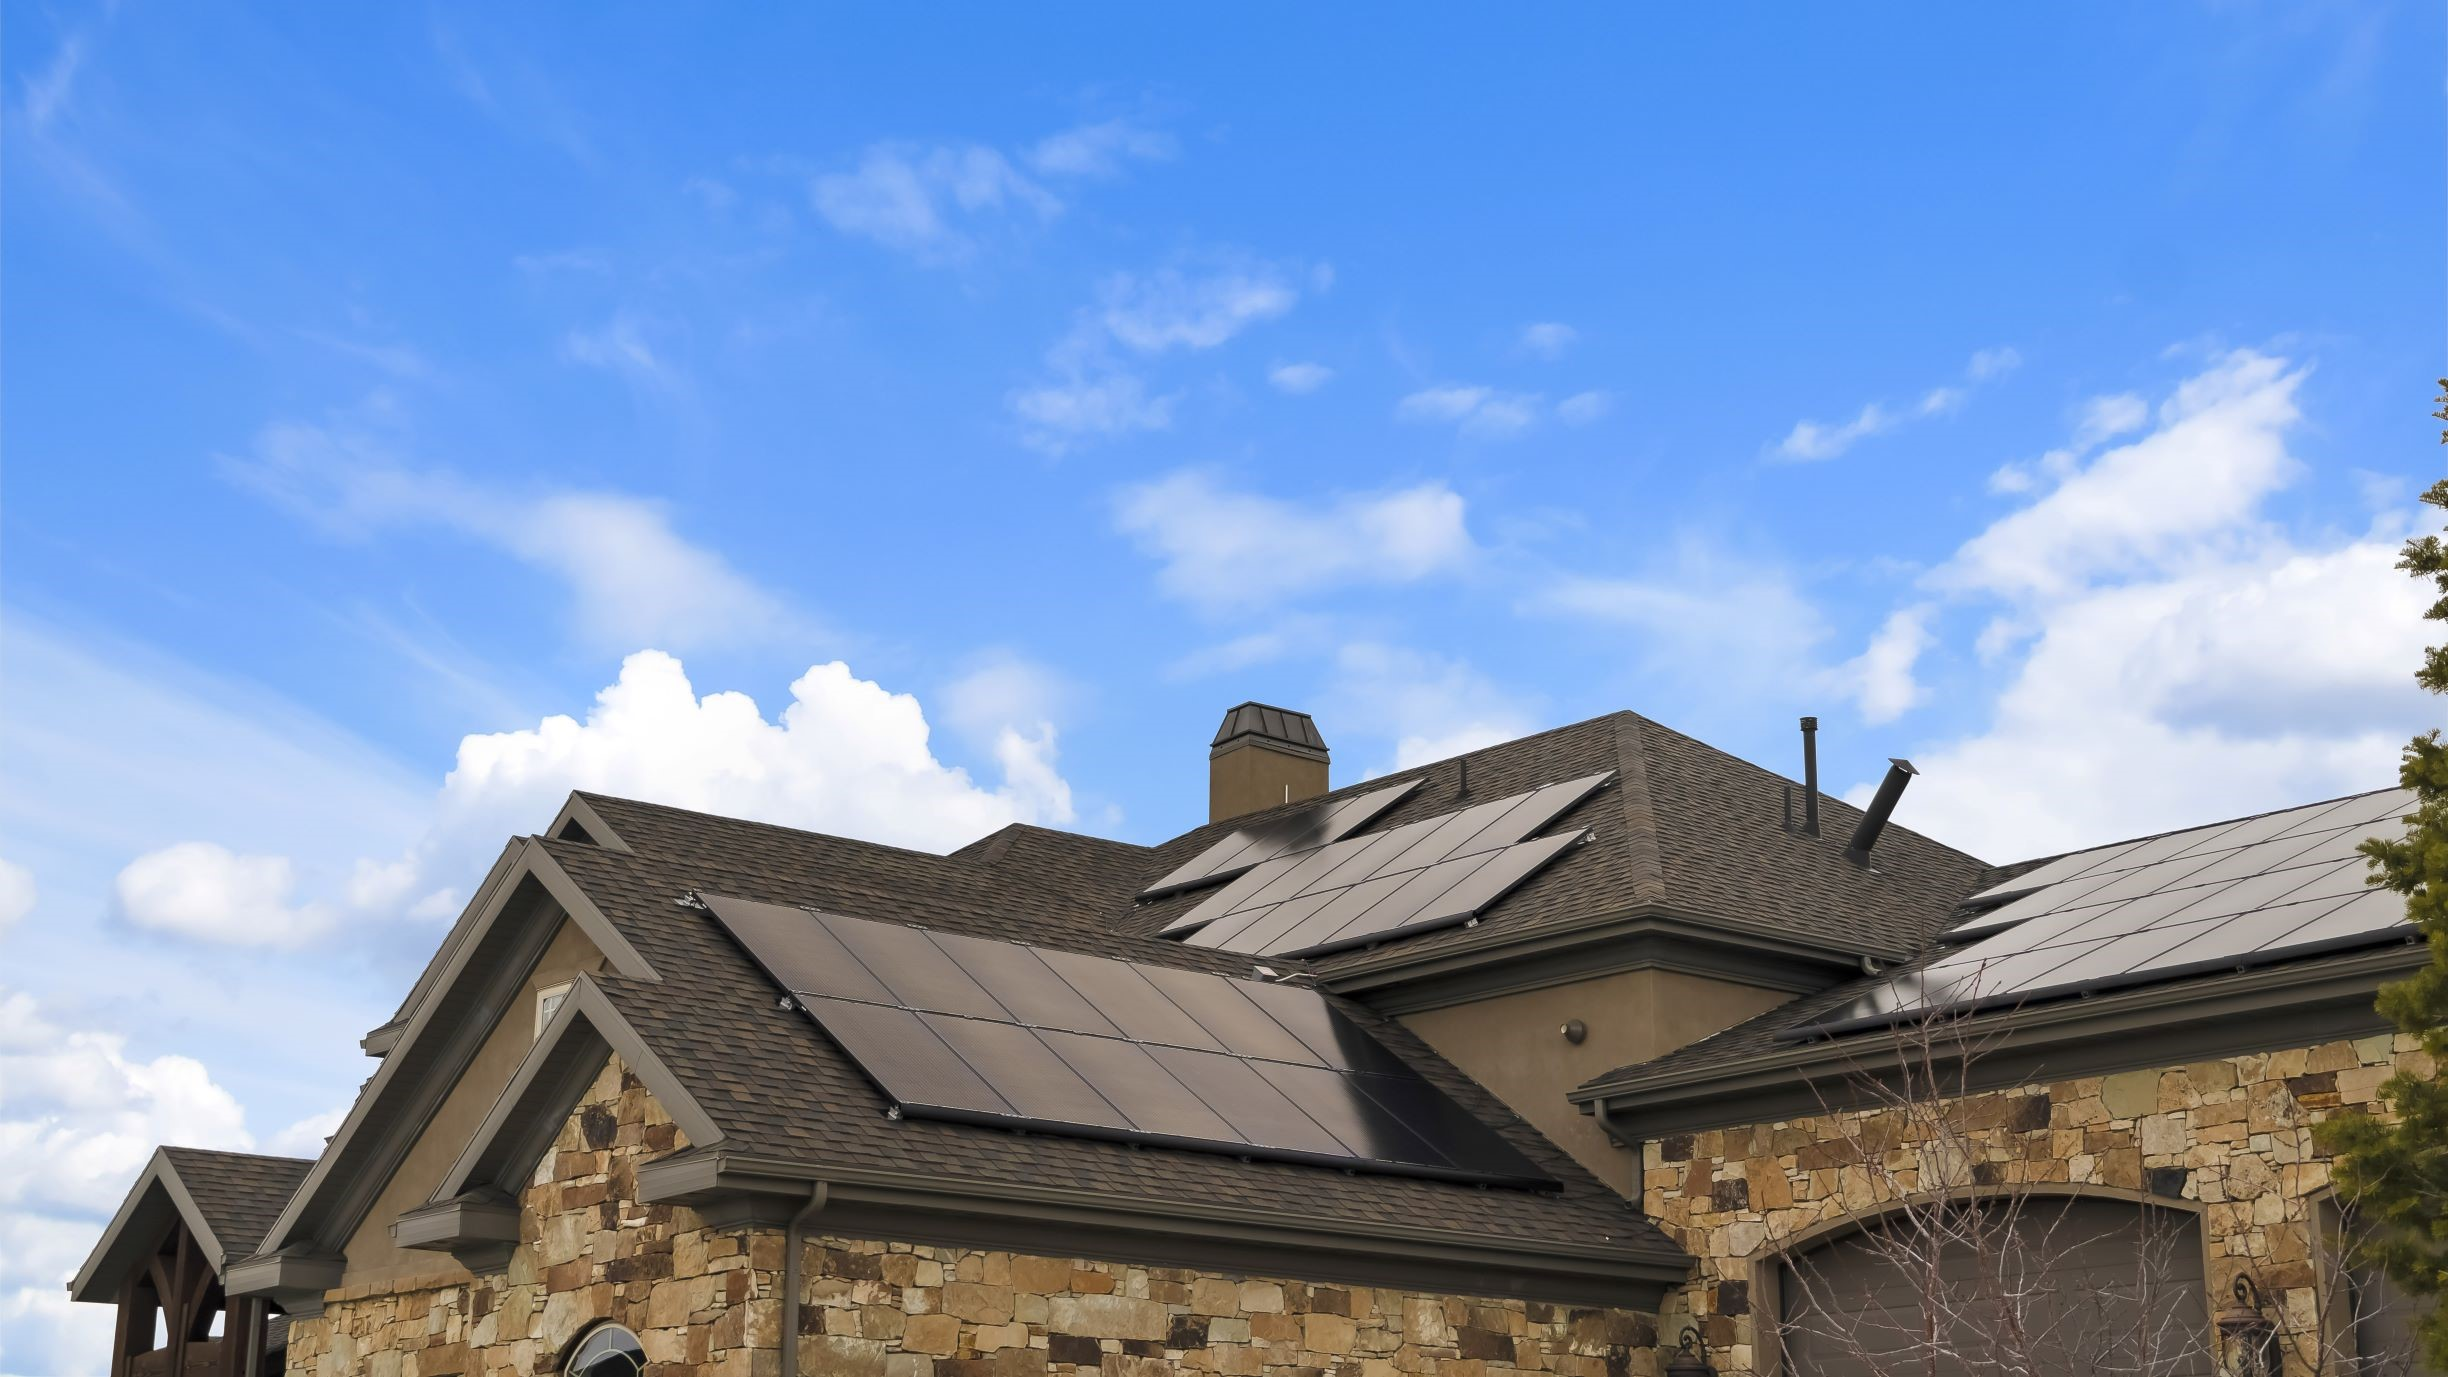 5 Common Myths About the Disadvantages of Solar Energy